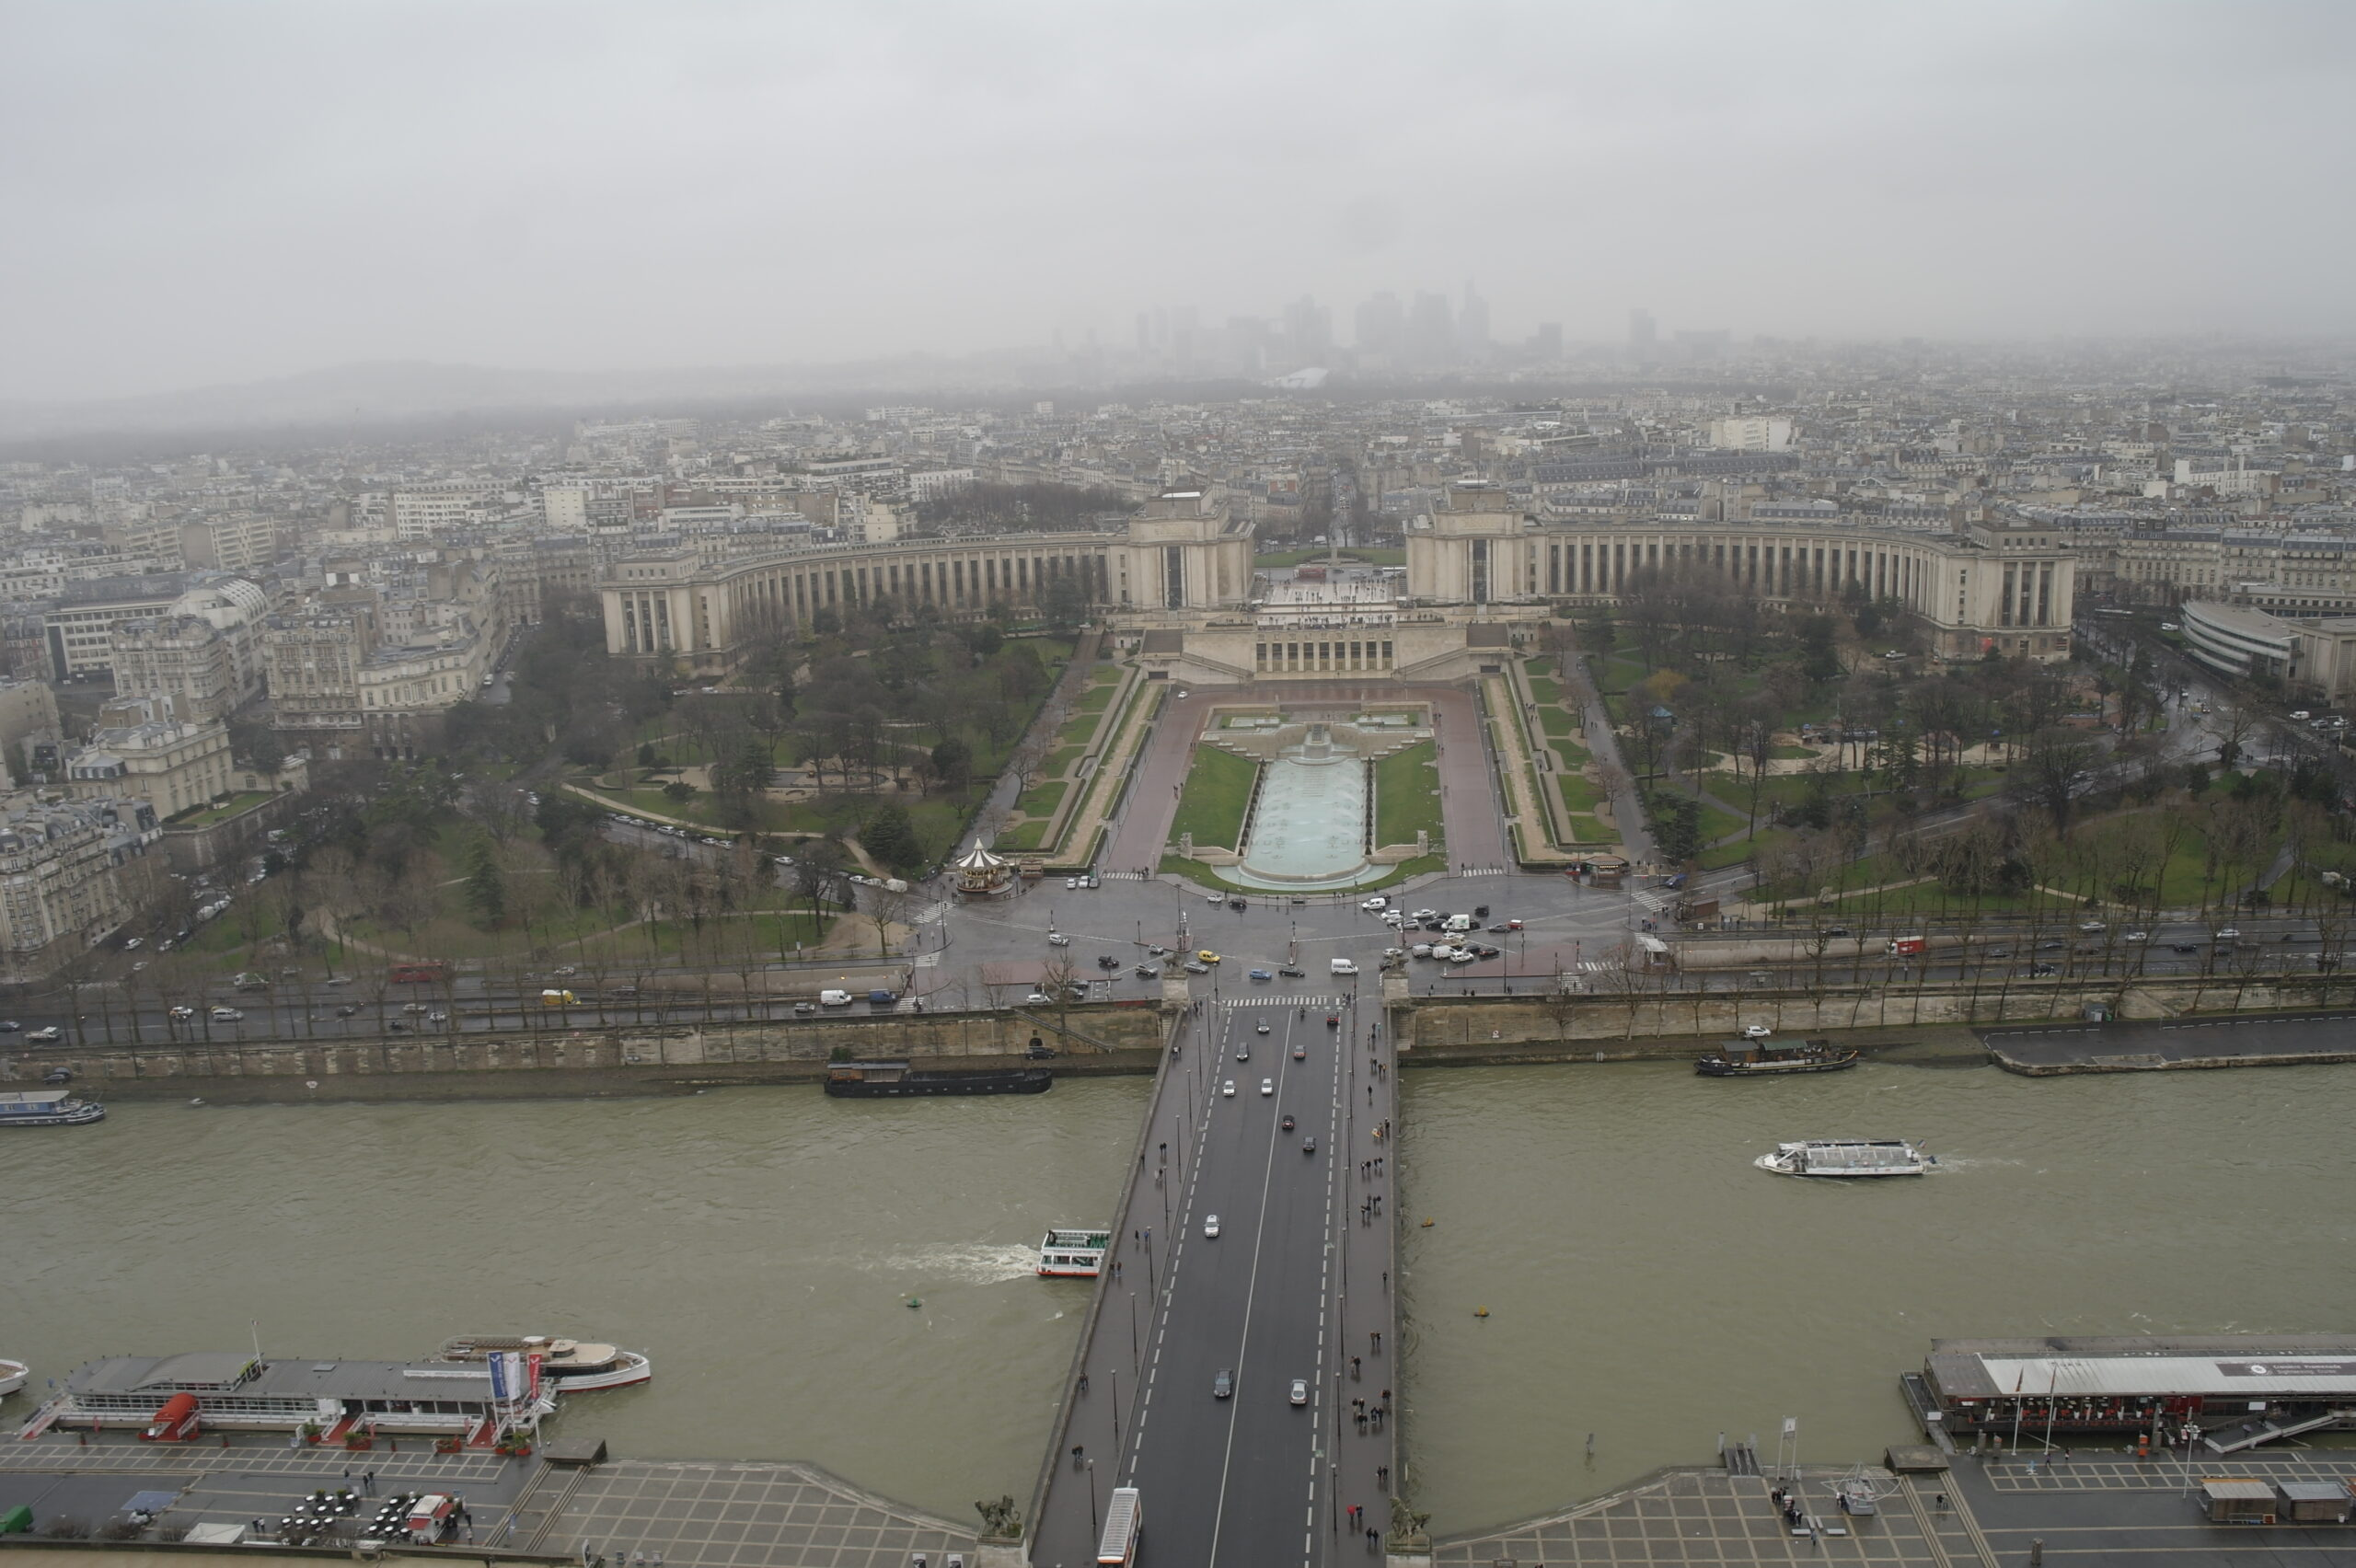 Panoramic views from the top of the Eiffel Tower